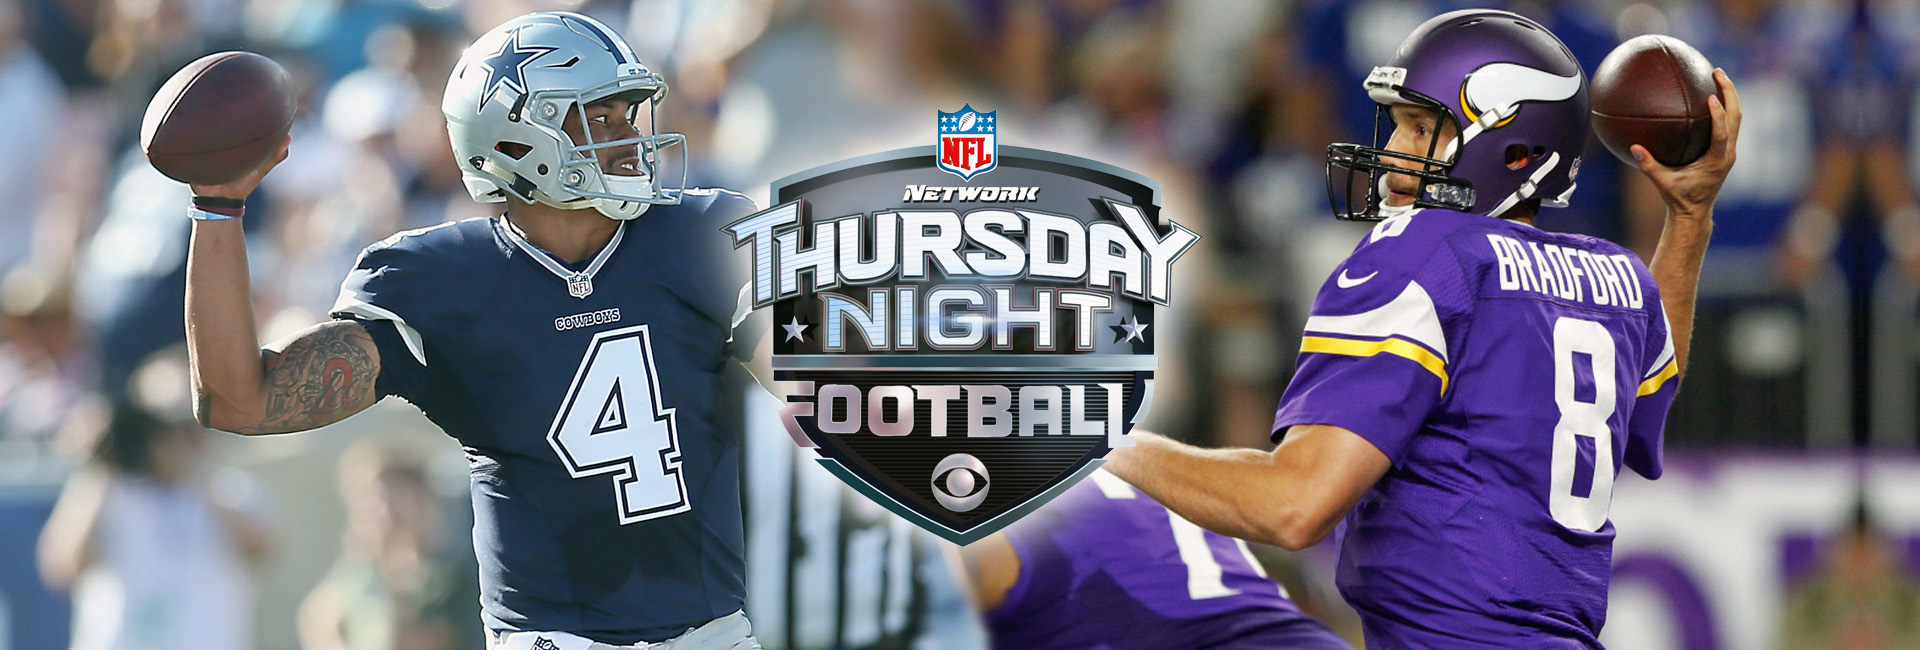 who plays on thursday night football this week football football